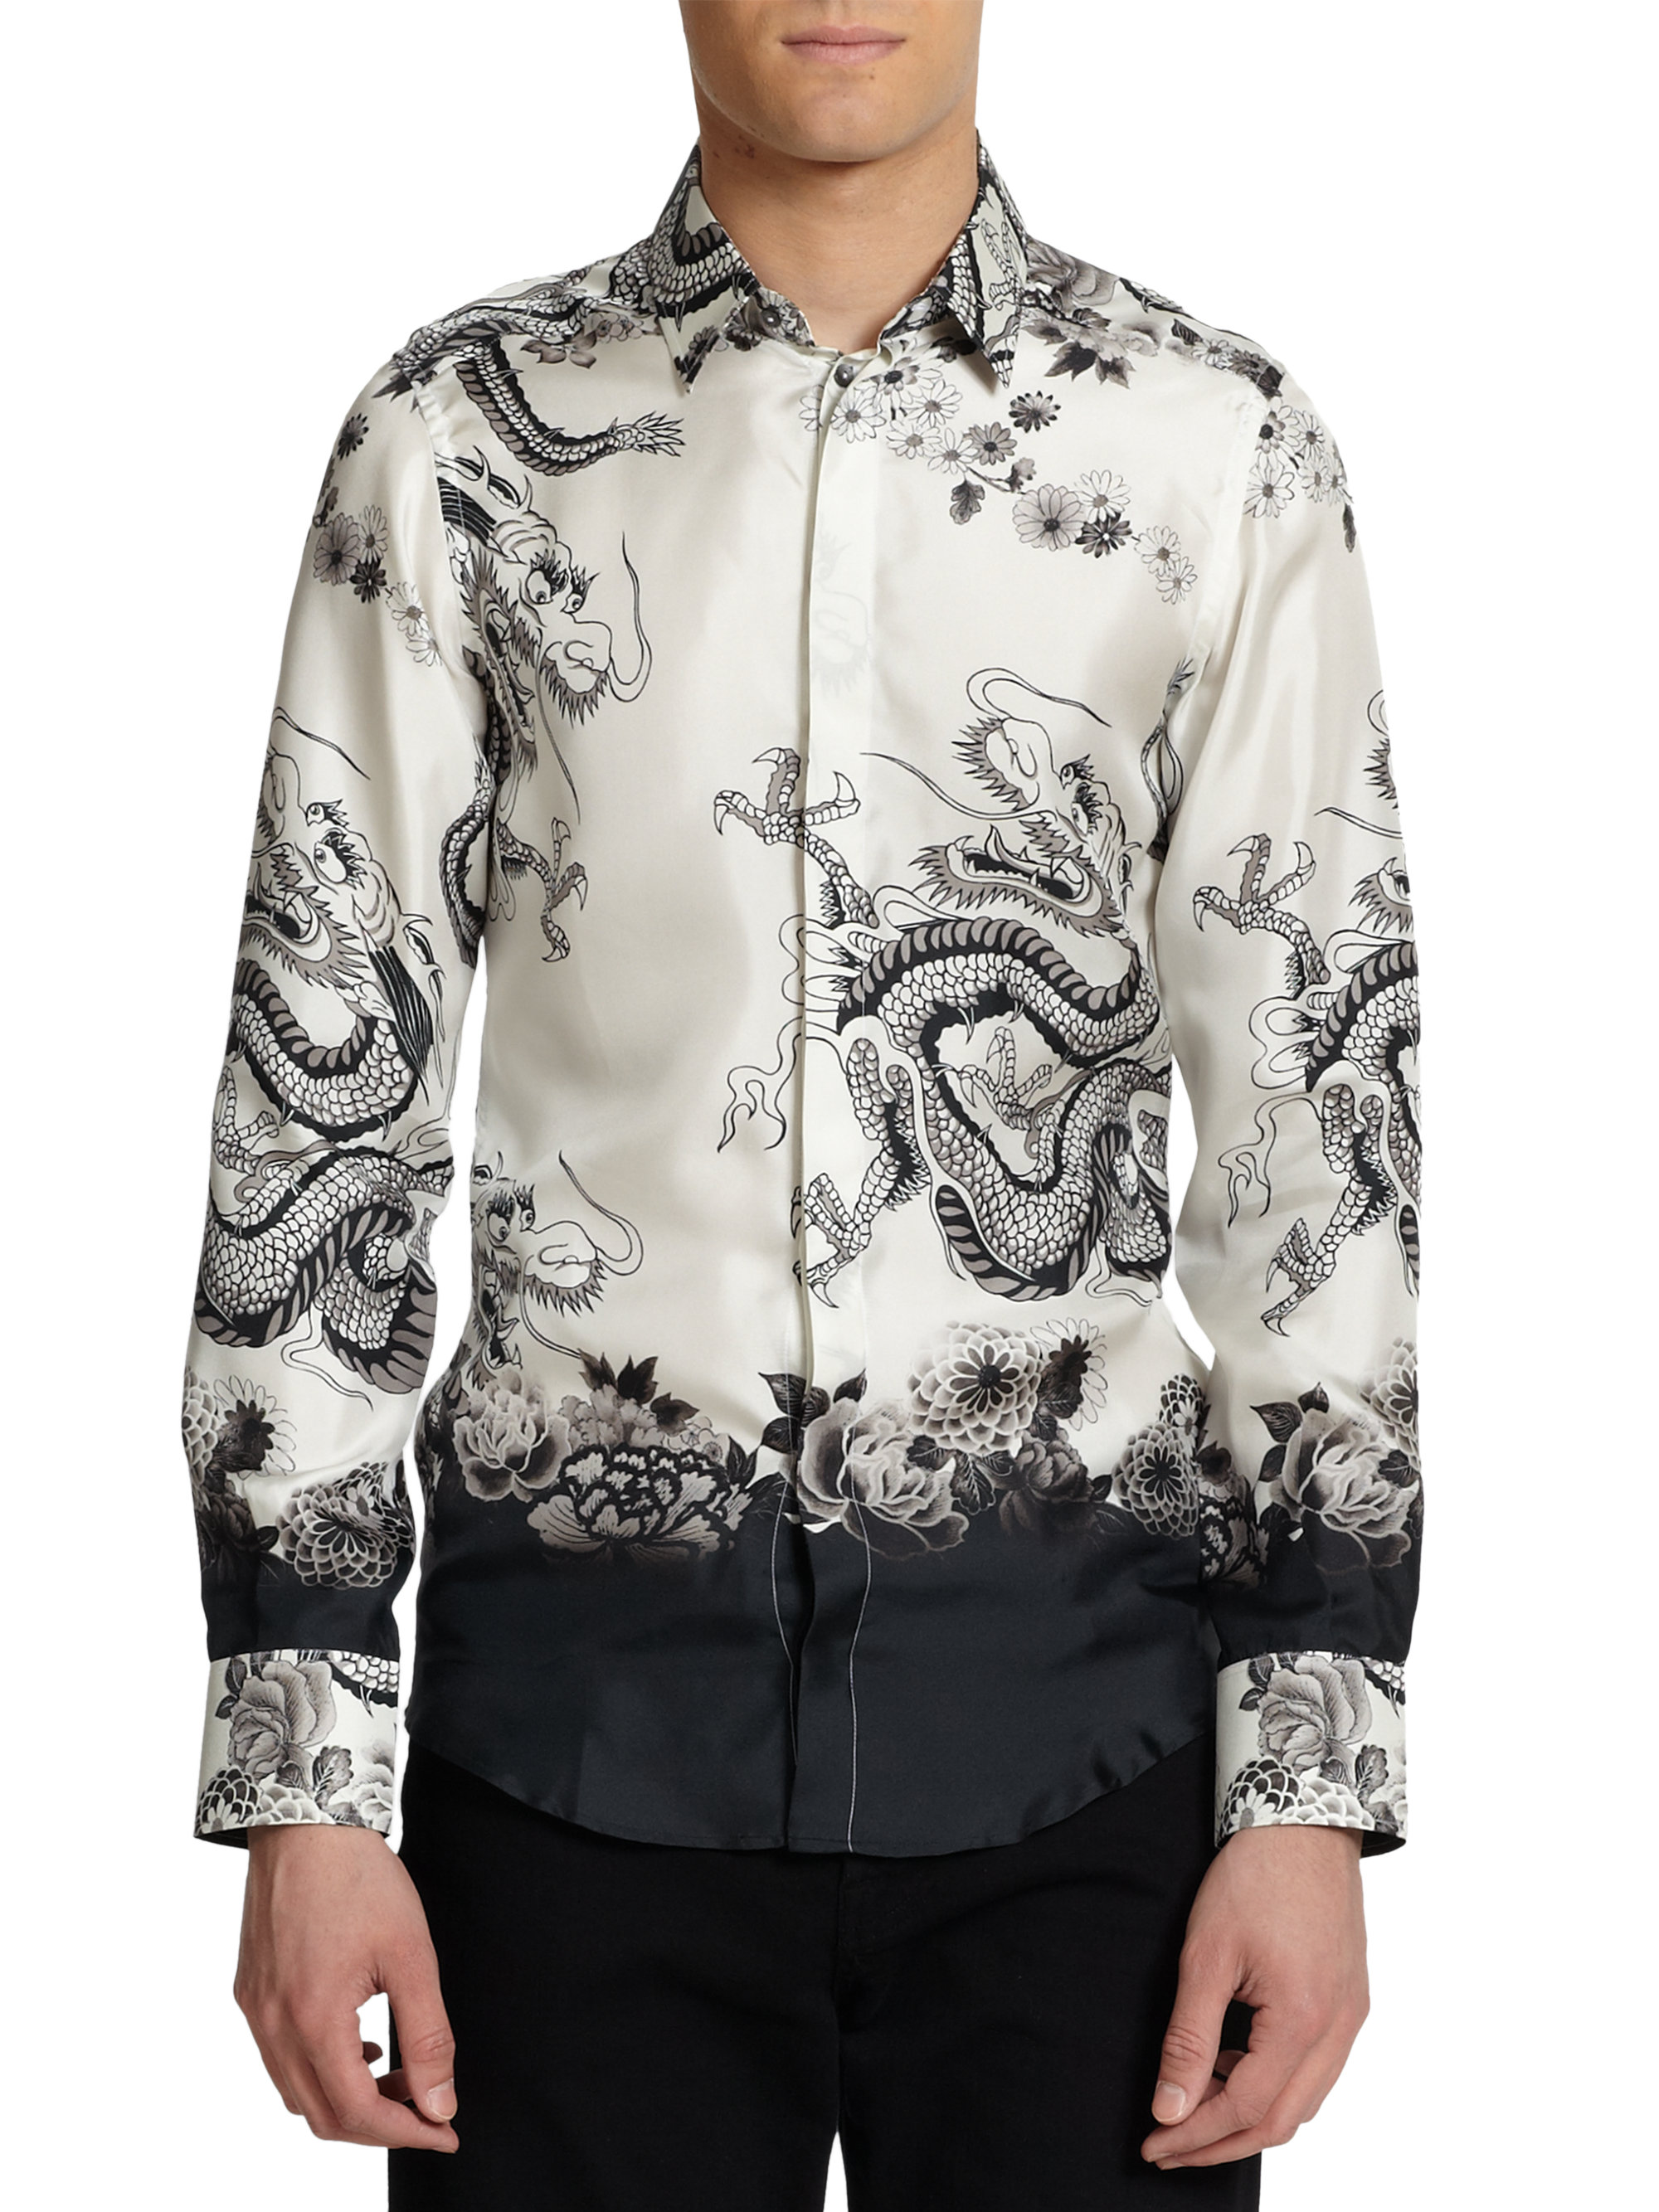 a1a5d230 Dolce And Gabbana Shirts   The Art of Mike Mignola